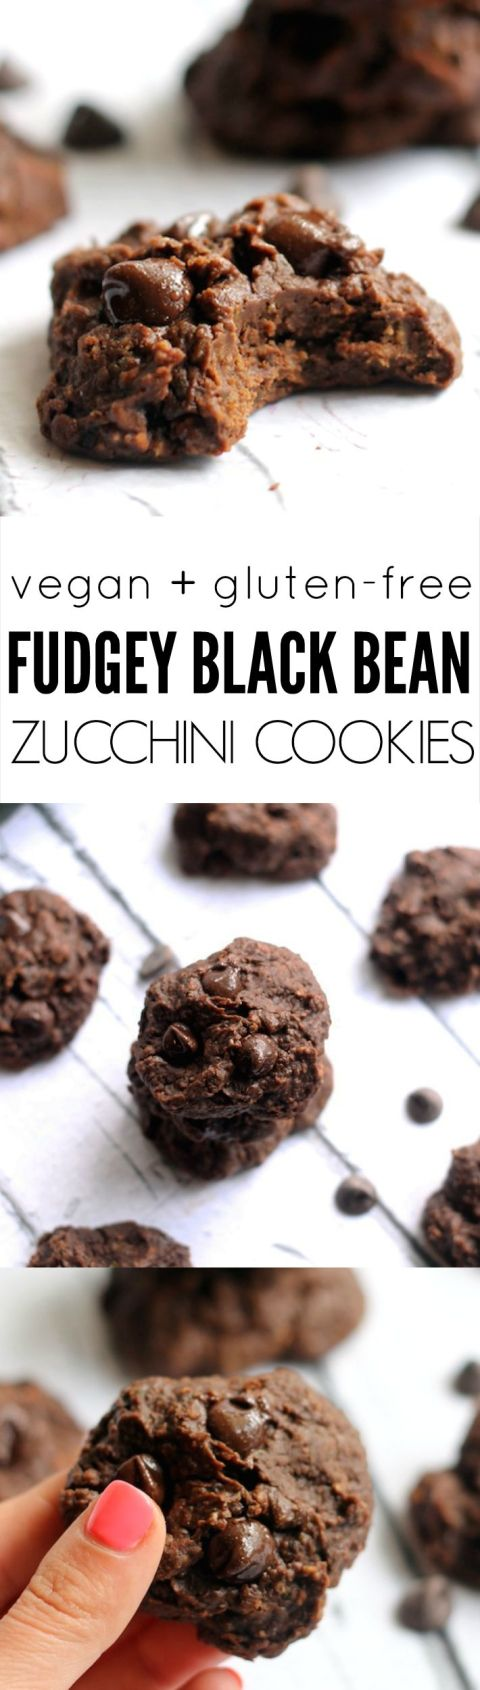 Fudgey Black Bean Zucchini Cookies---All the deliciousness of a chocolate cookie without the flour, butter, and refined sugar!